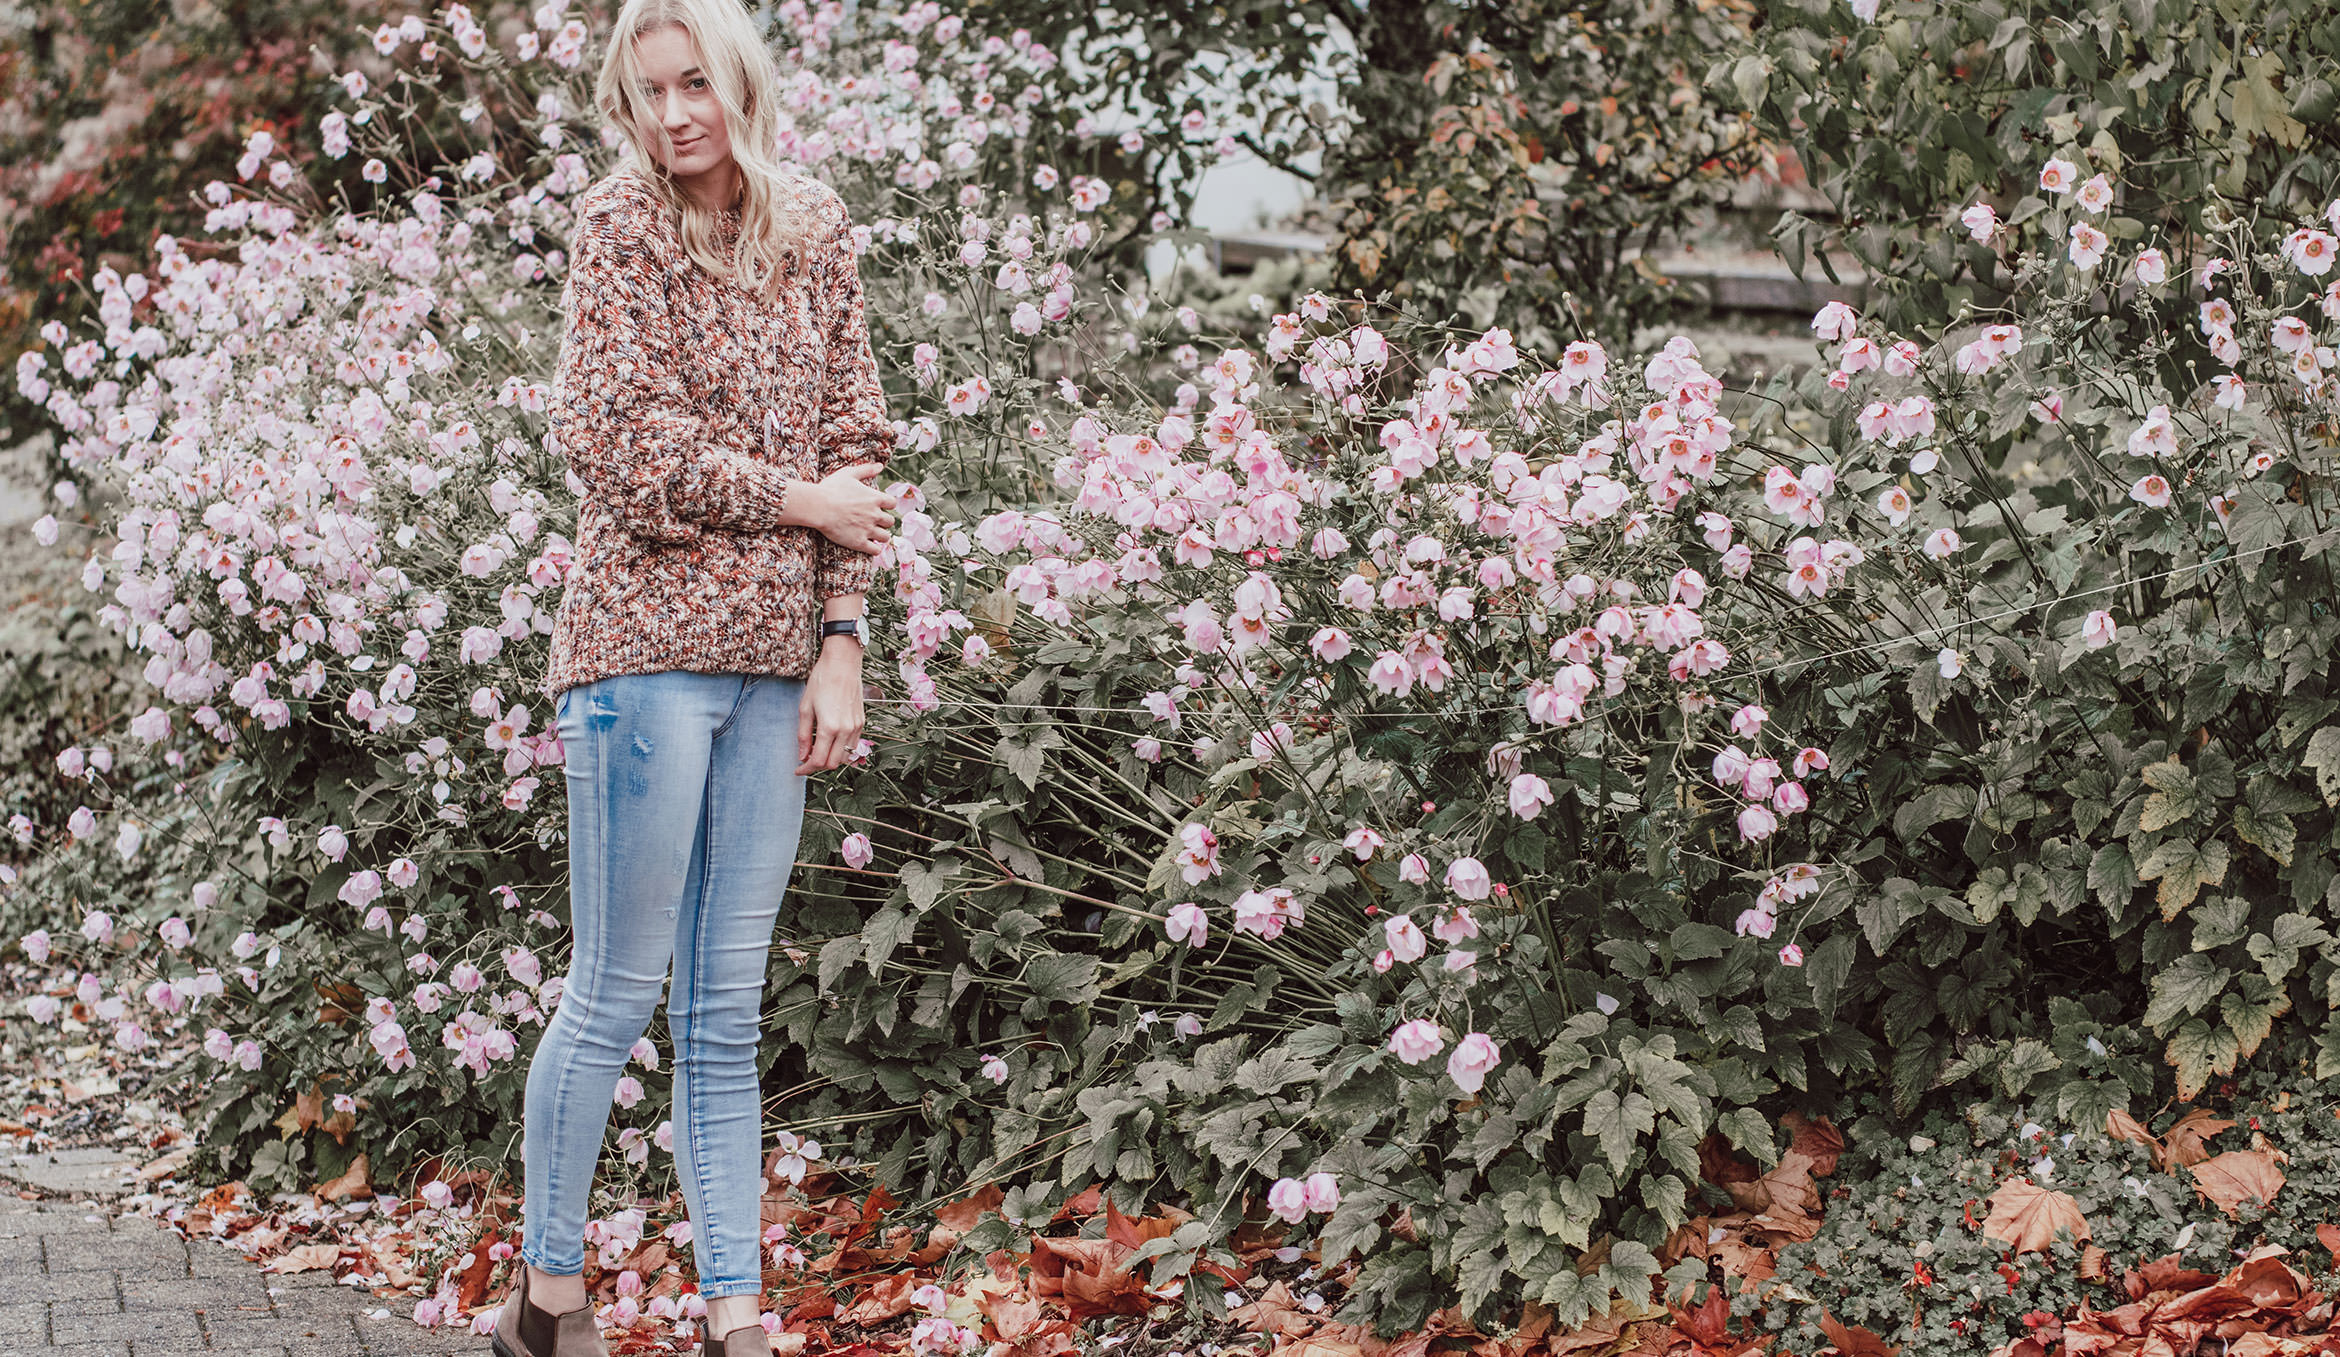 Autumn capsule wardrobe - multi sweater outfit